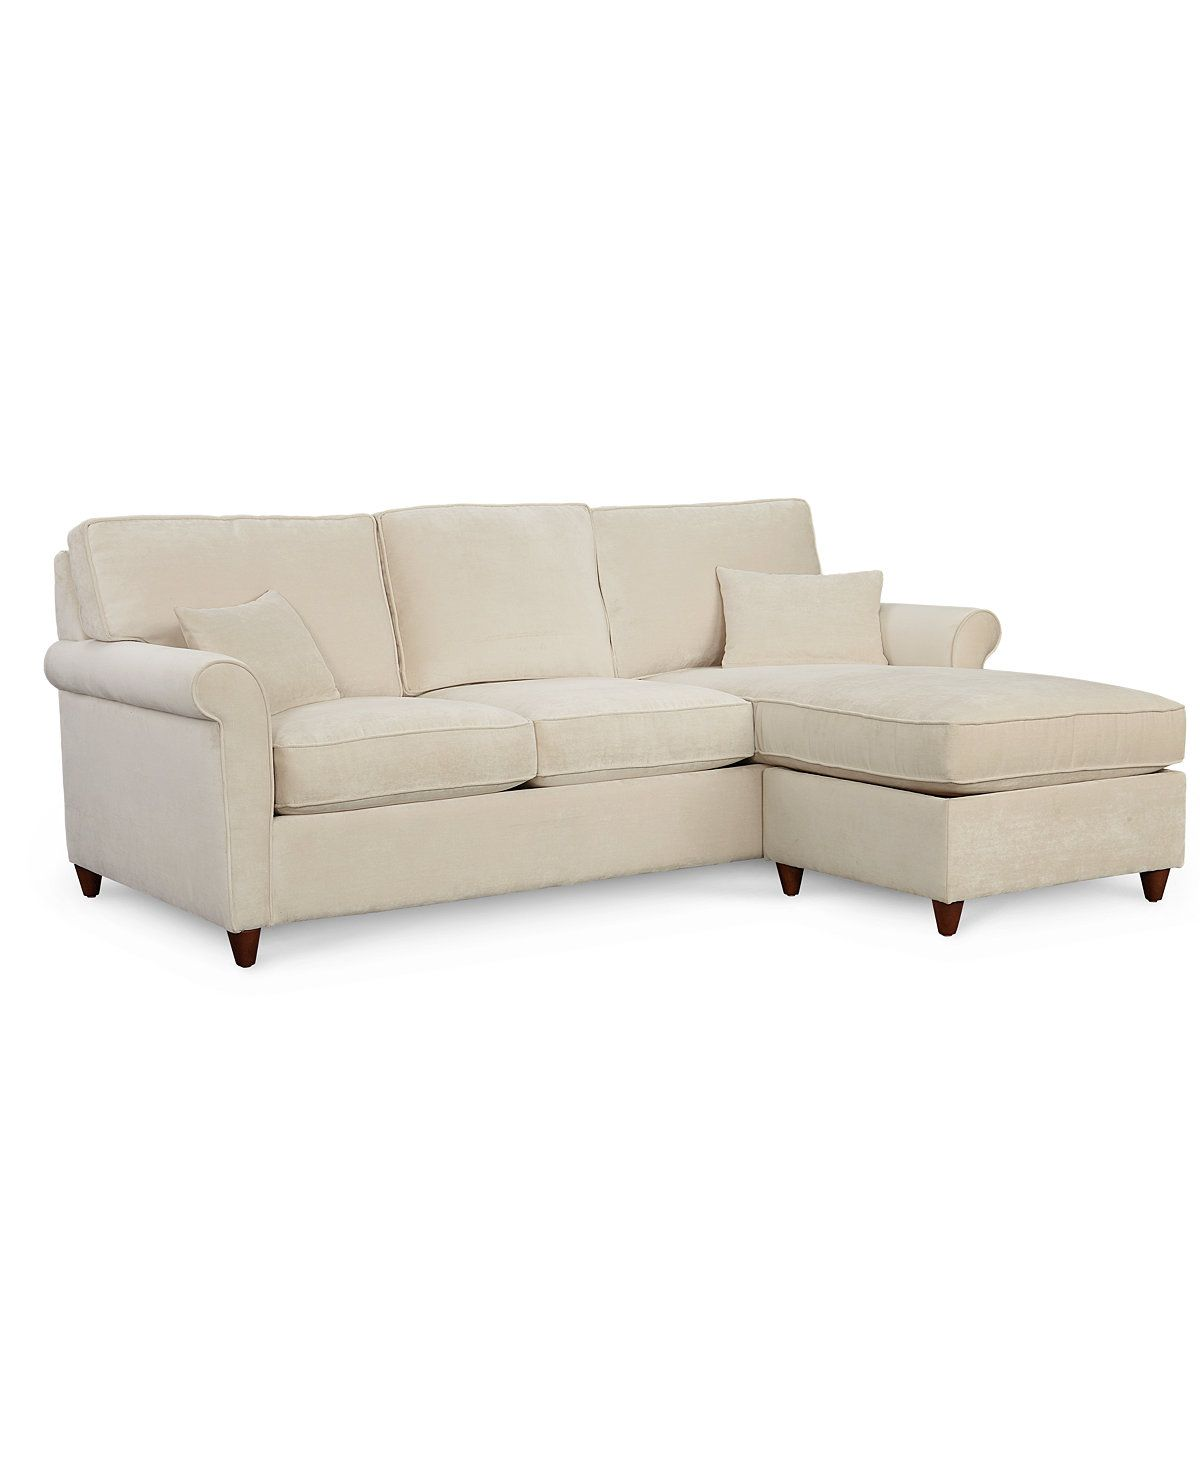 Lidia 82 Fabric 2-Pc. Reversible Chaise Sectional Sofa with Storage ...